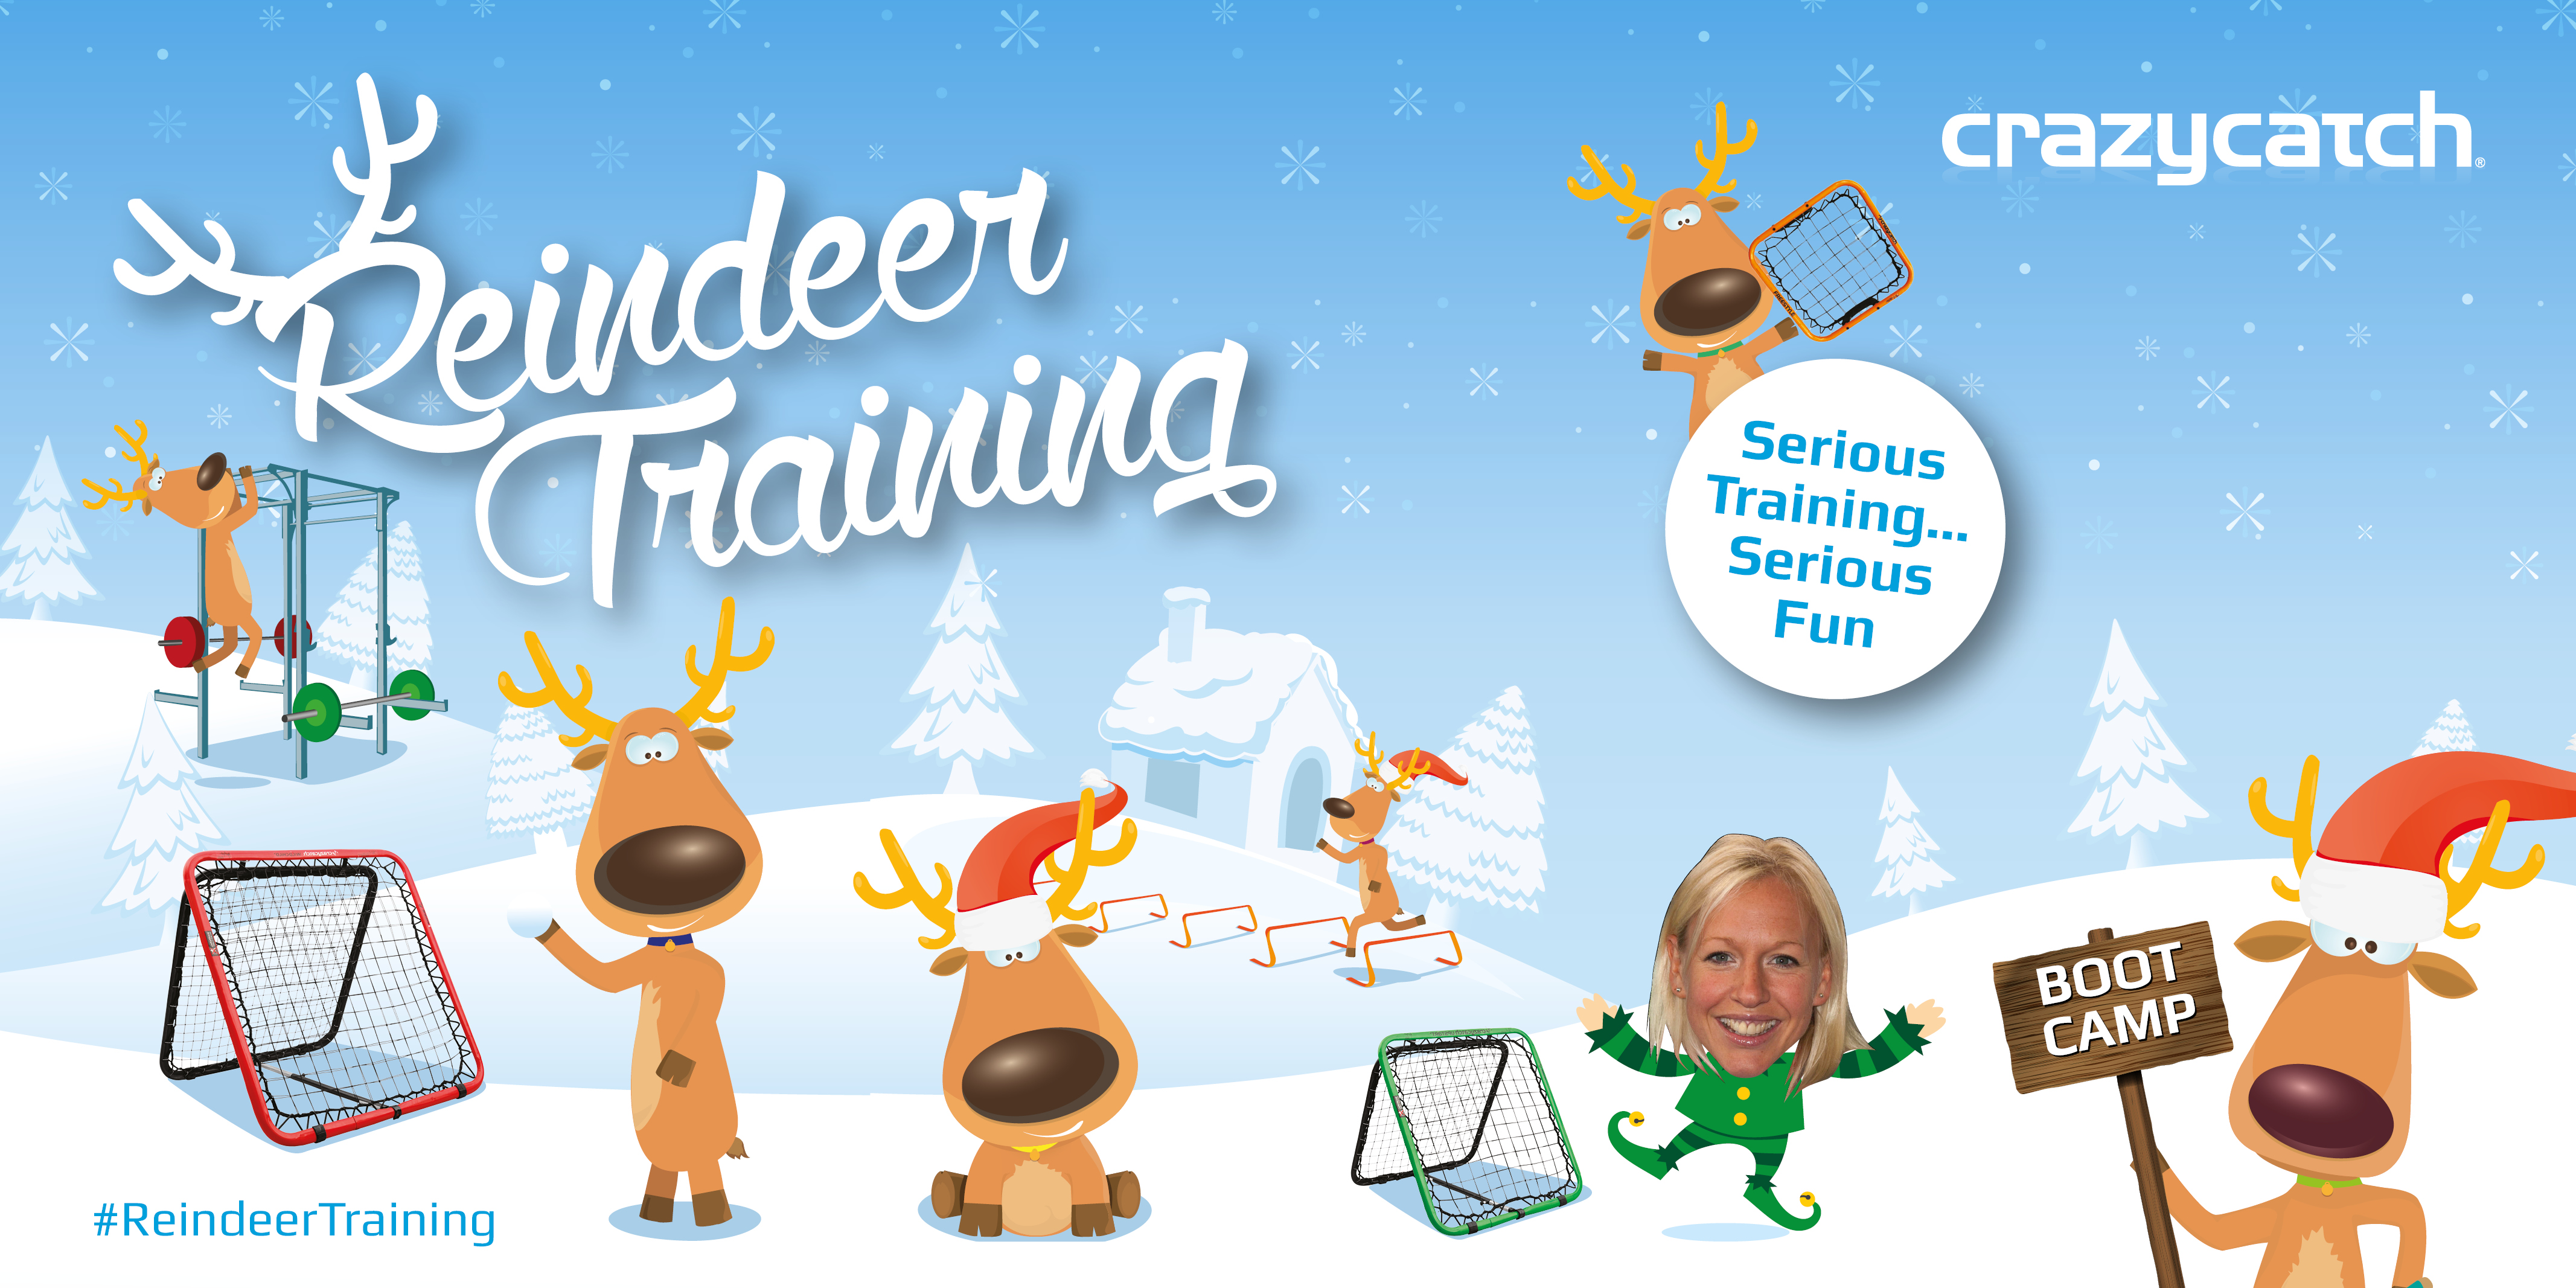 A gruelling boot camp to kick of #ReindeerTraining